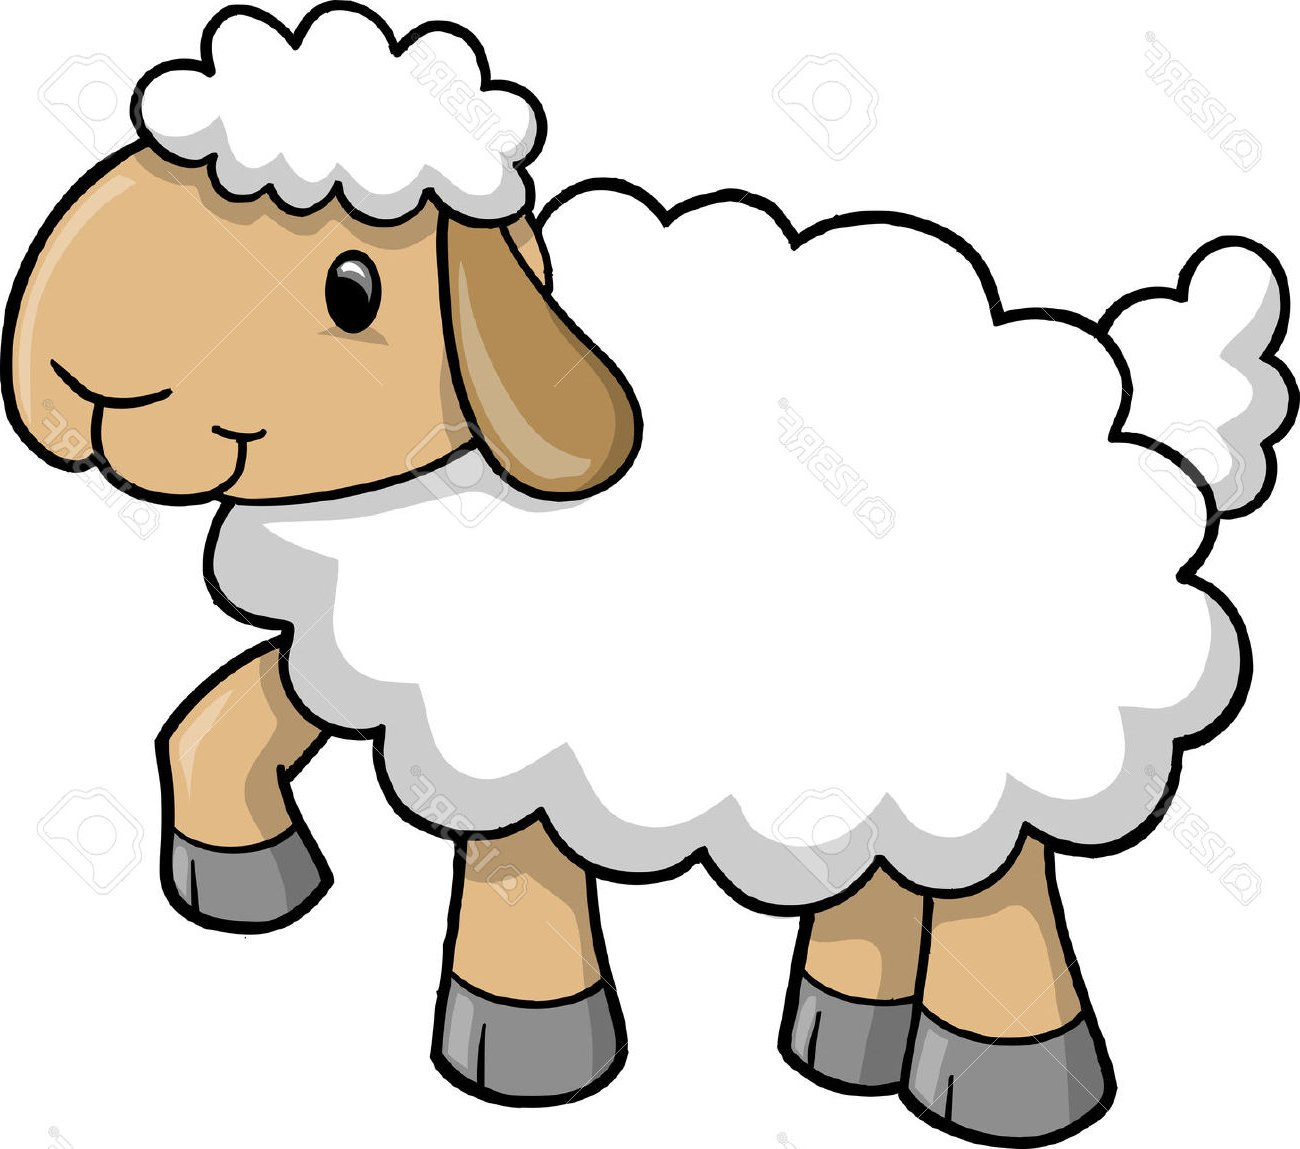 Animated sheep clipart graphic free download Lamb clipart animated, Lamb animated Transparent FREE for download ... graphic free download